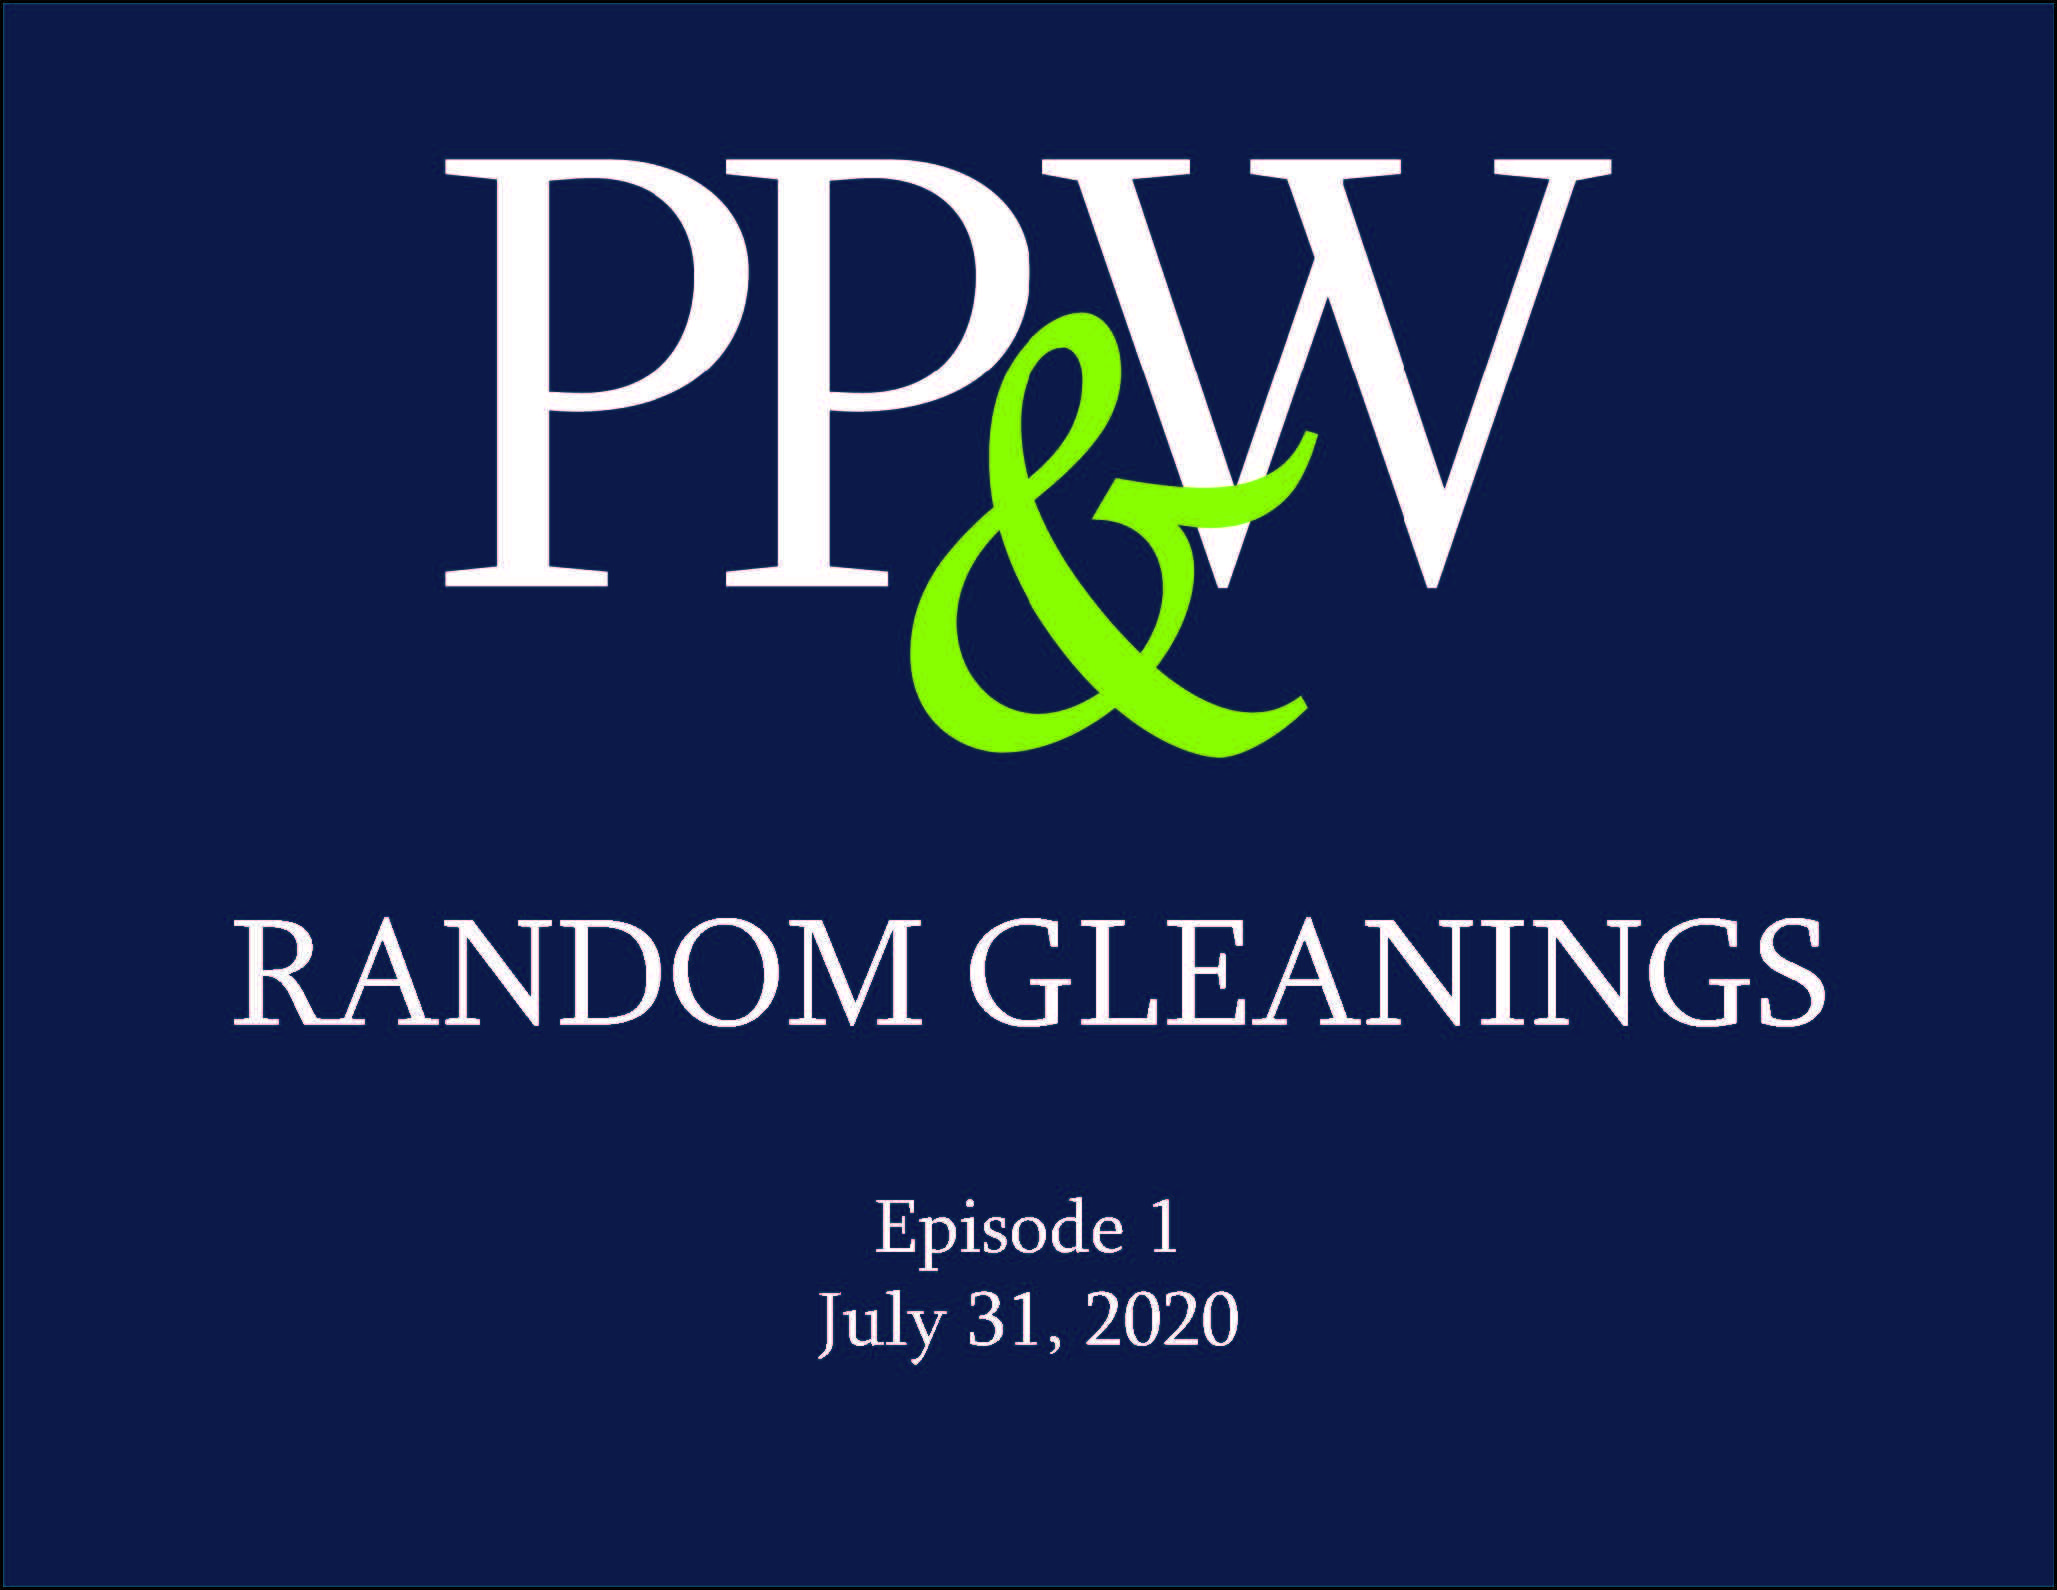 Random Gleanings, Episode 1 Thumbnail